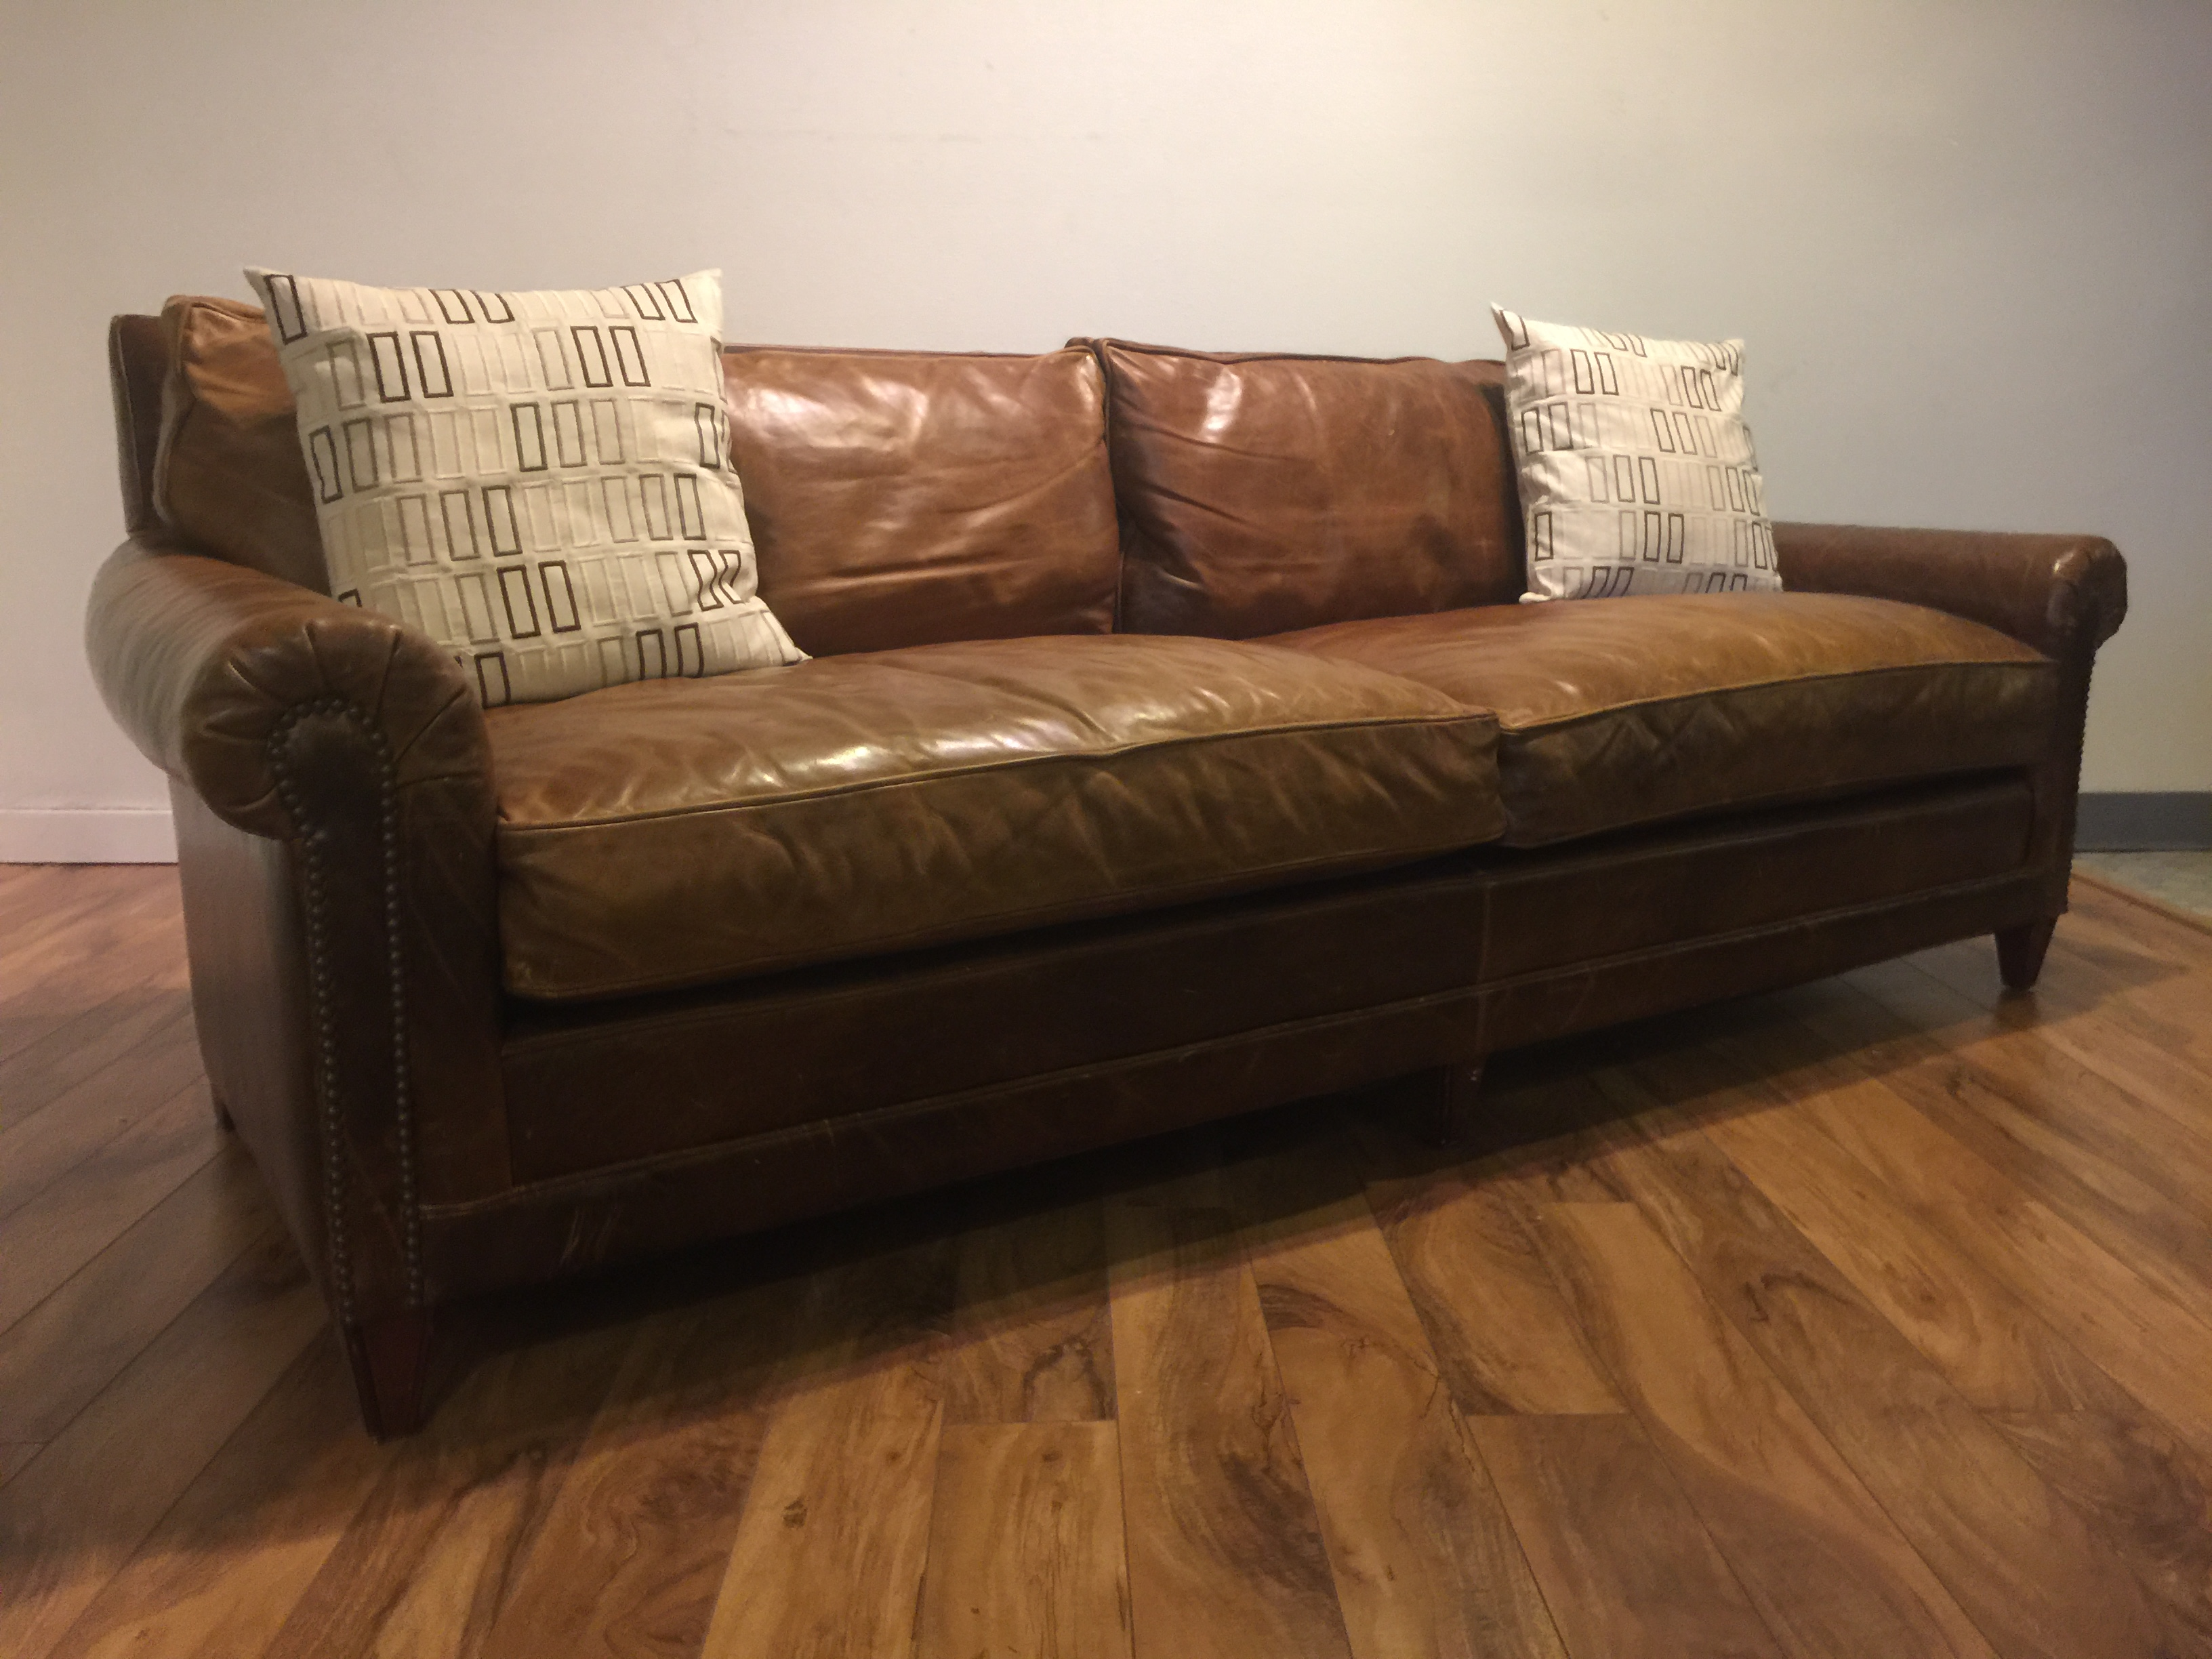 ralph lauren home chesterfield sofa ebay sofas second hand sold leather modern to vintage